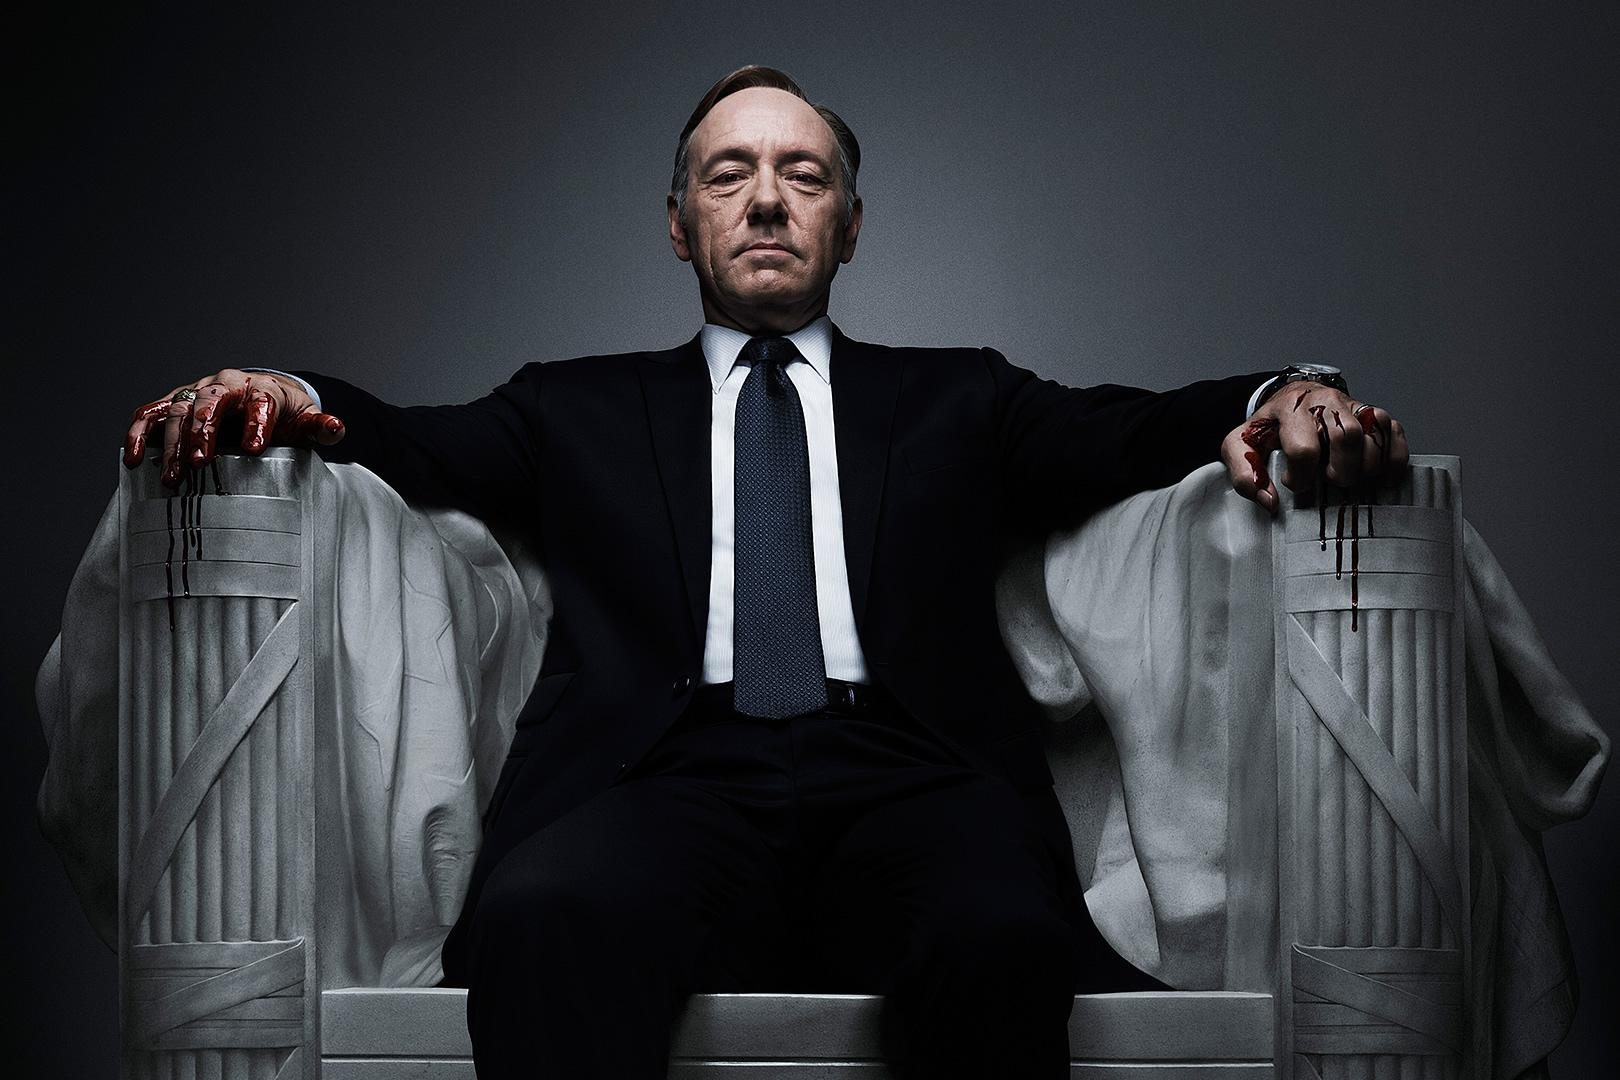 Profits up sixfold as Netflix looks to build on its 'House of Cards'